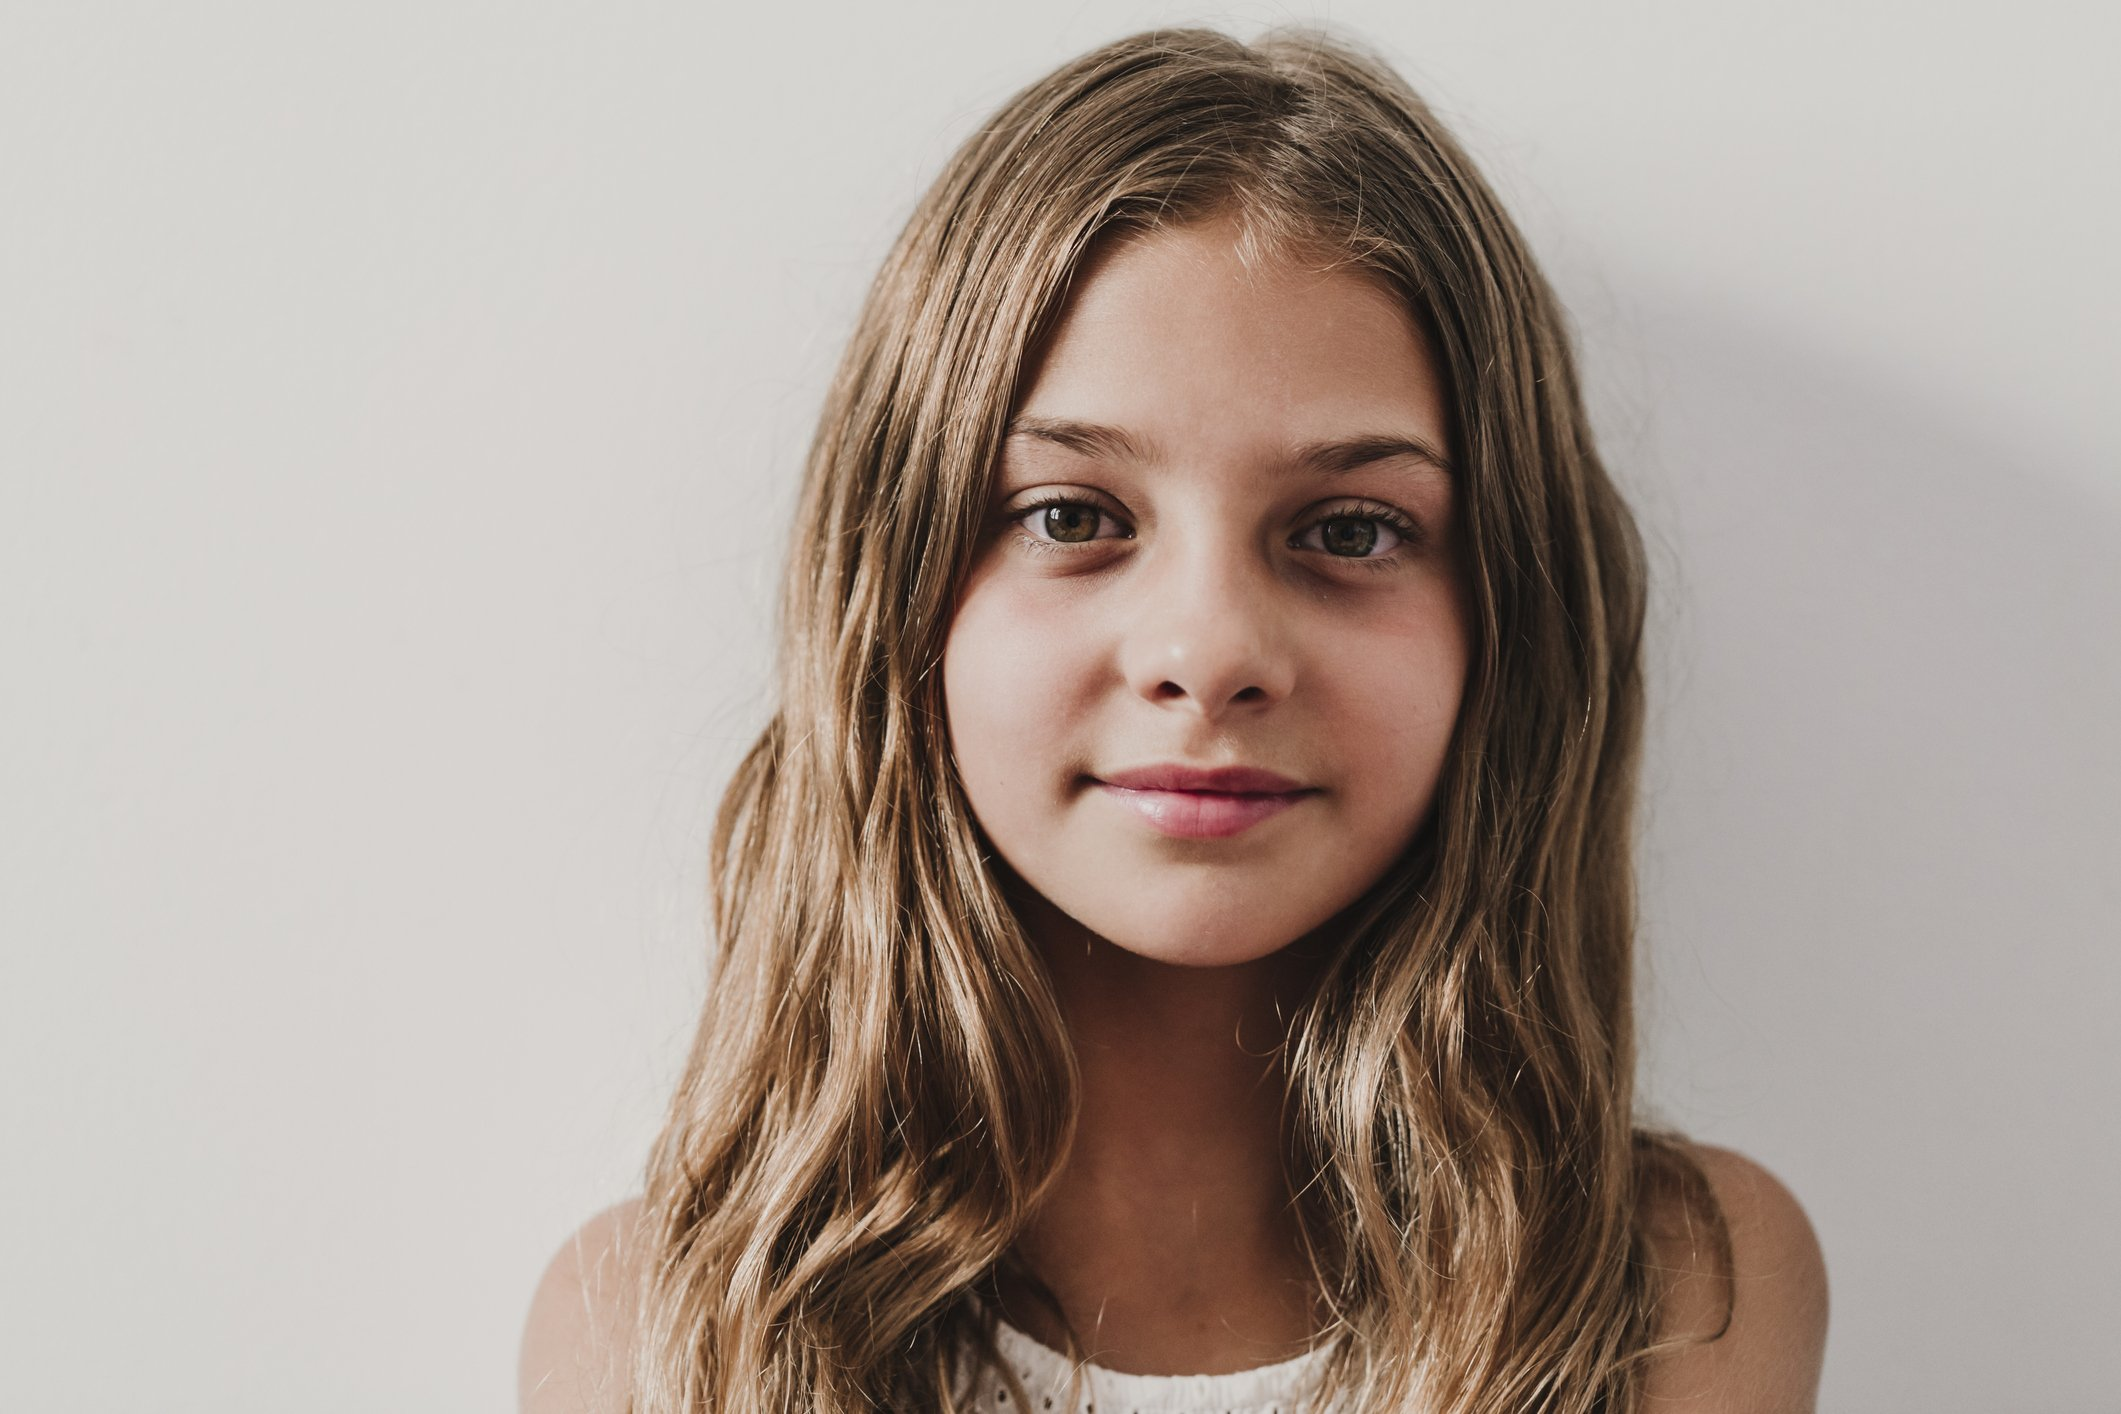 A portrait of a young girl smiling.   Photo: Getty Images